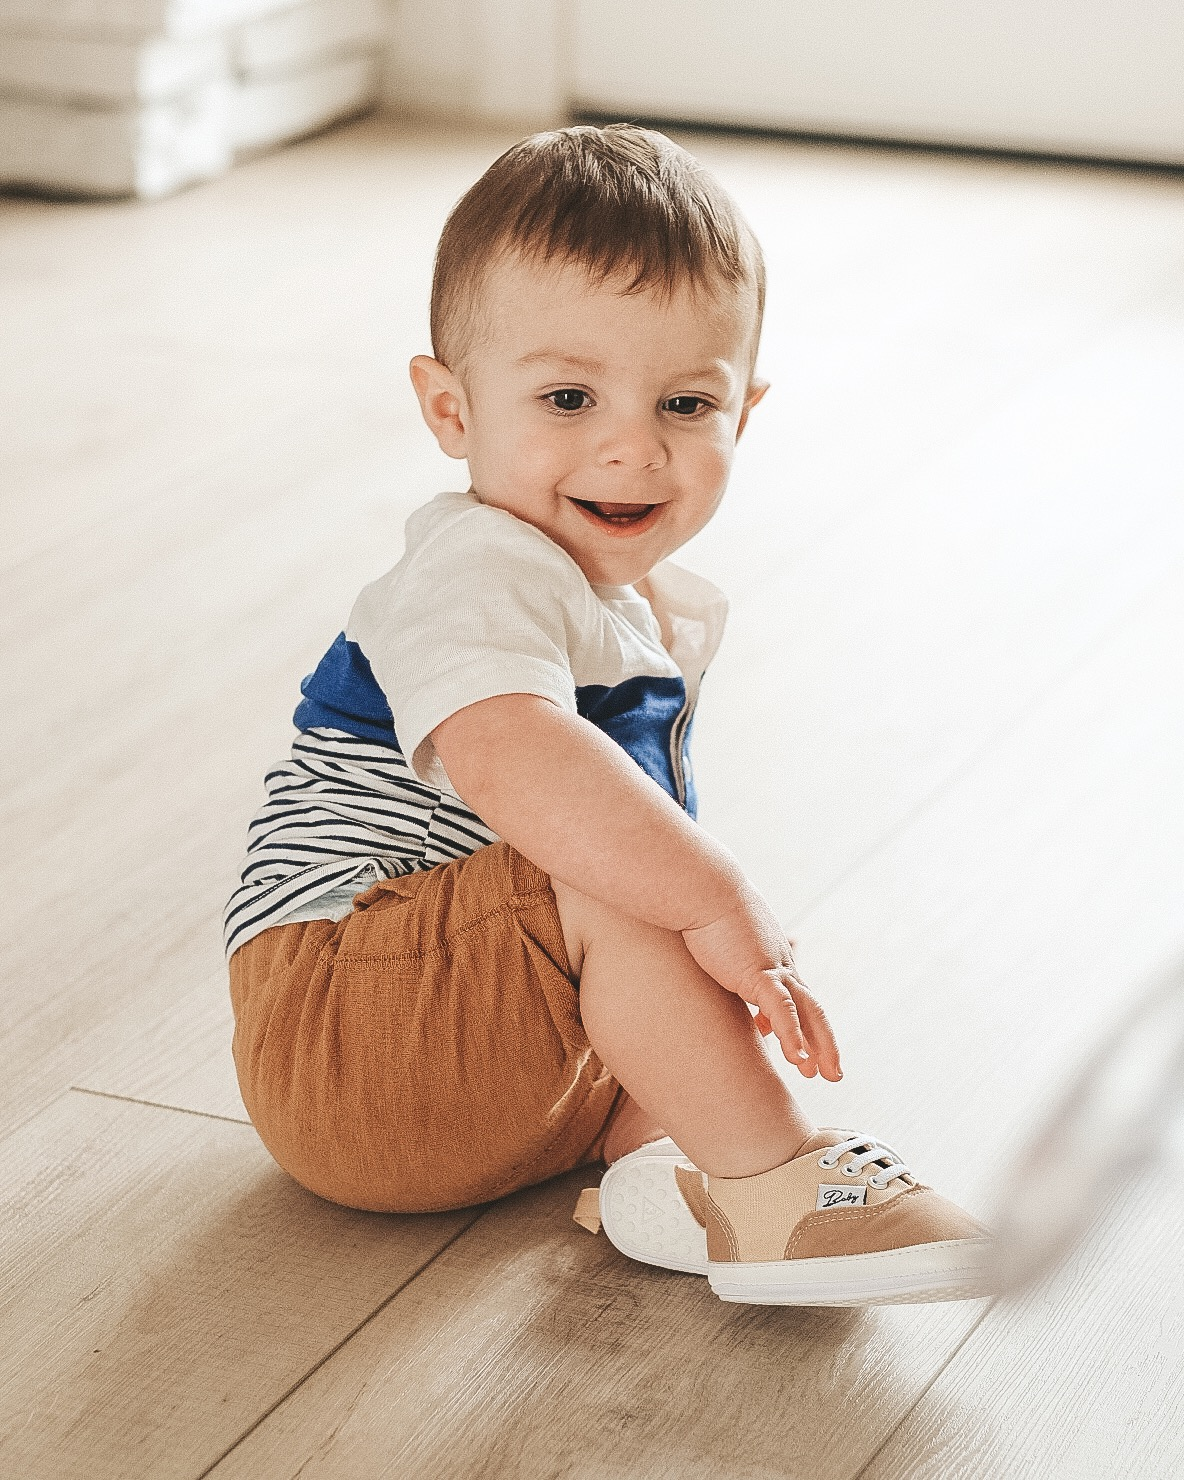 Jett Jones 12 Month update.  Cute baby boy style.  Stripe shirt with khaki shorts and vans look alike soft soled shoes.